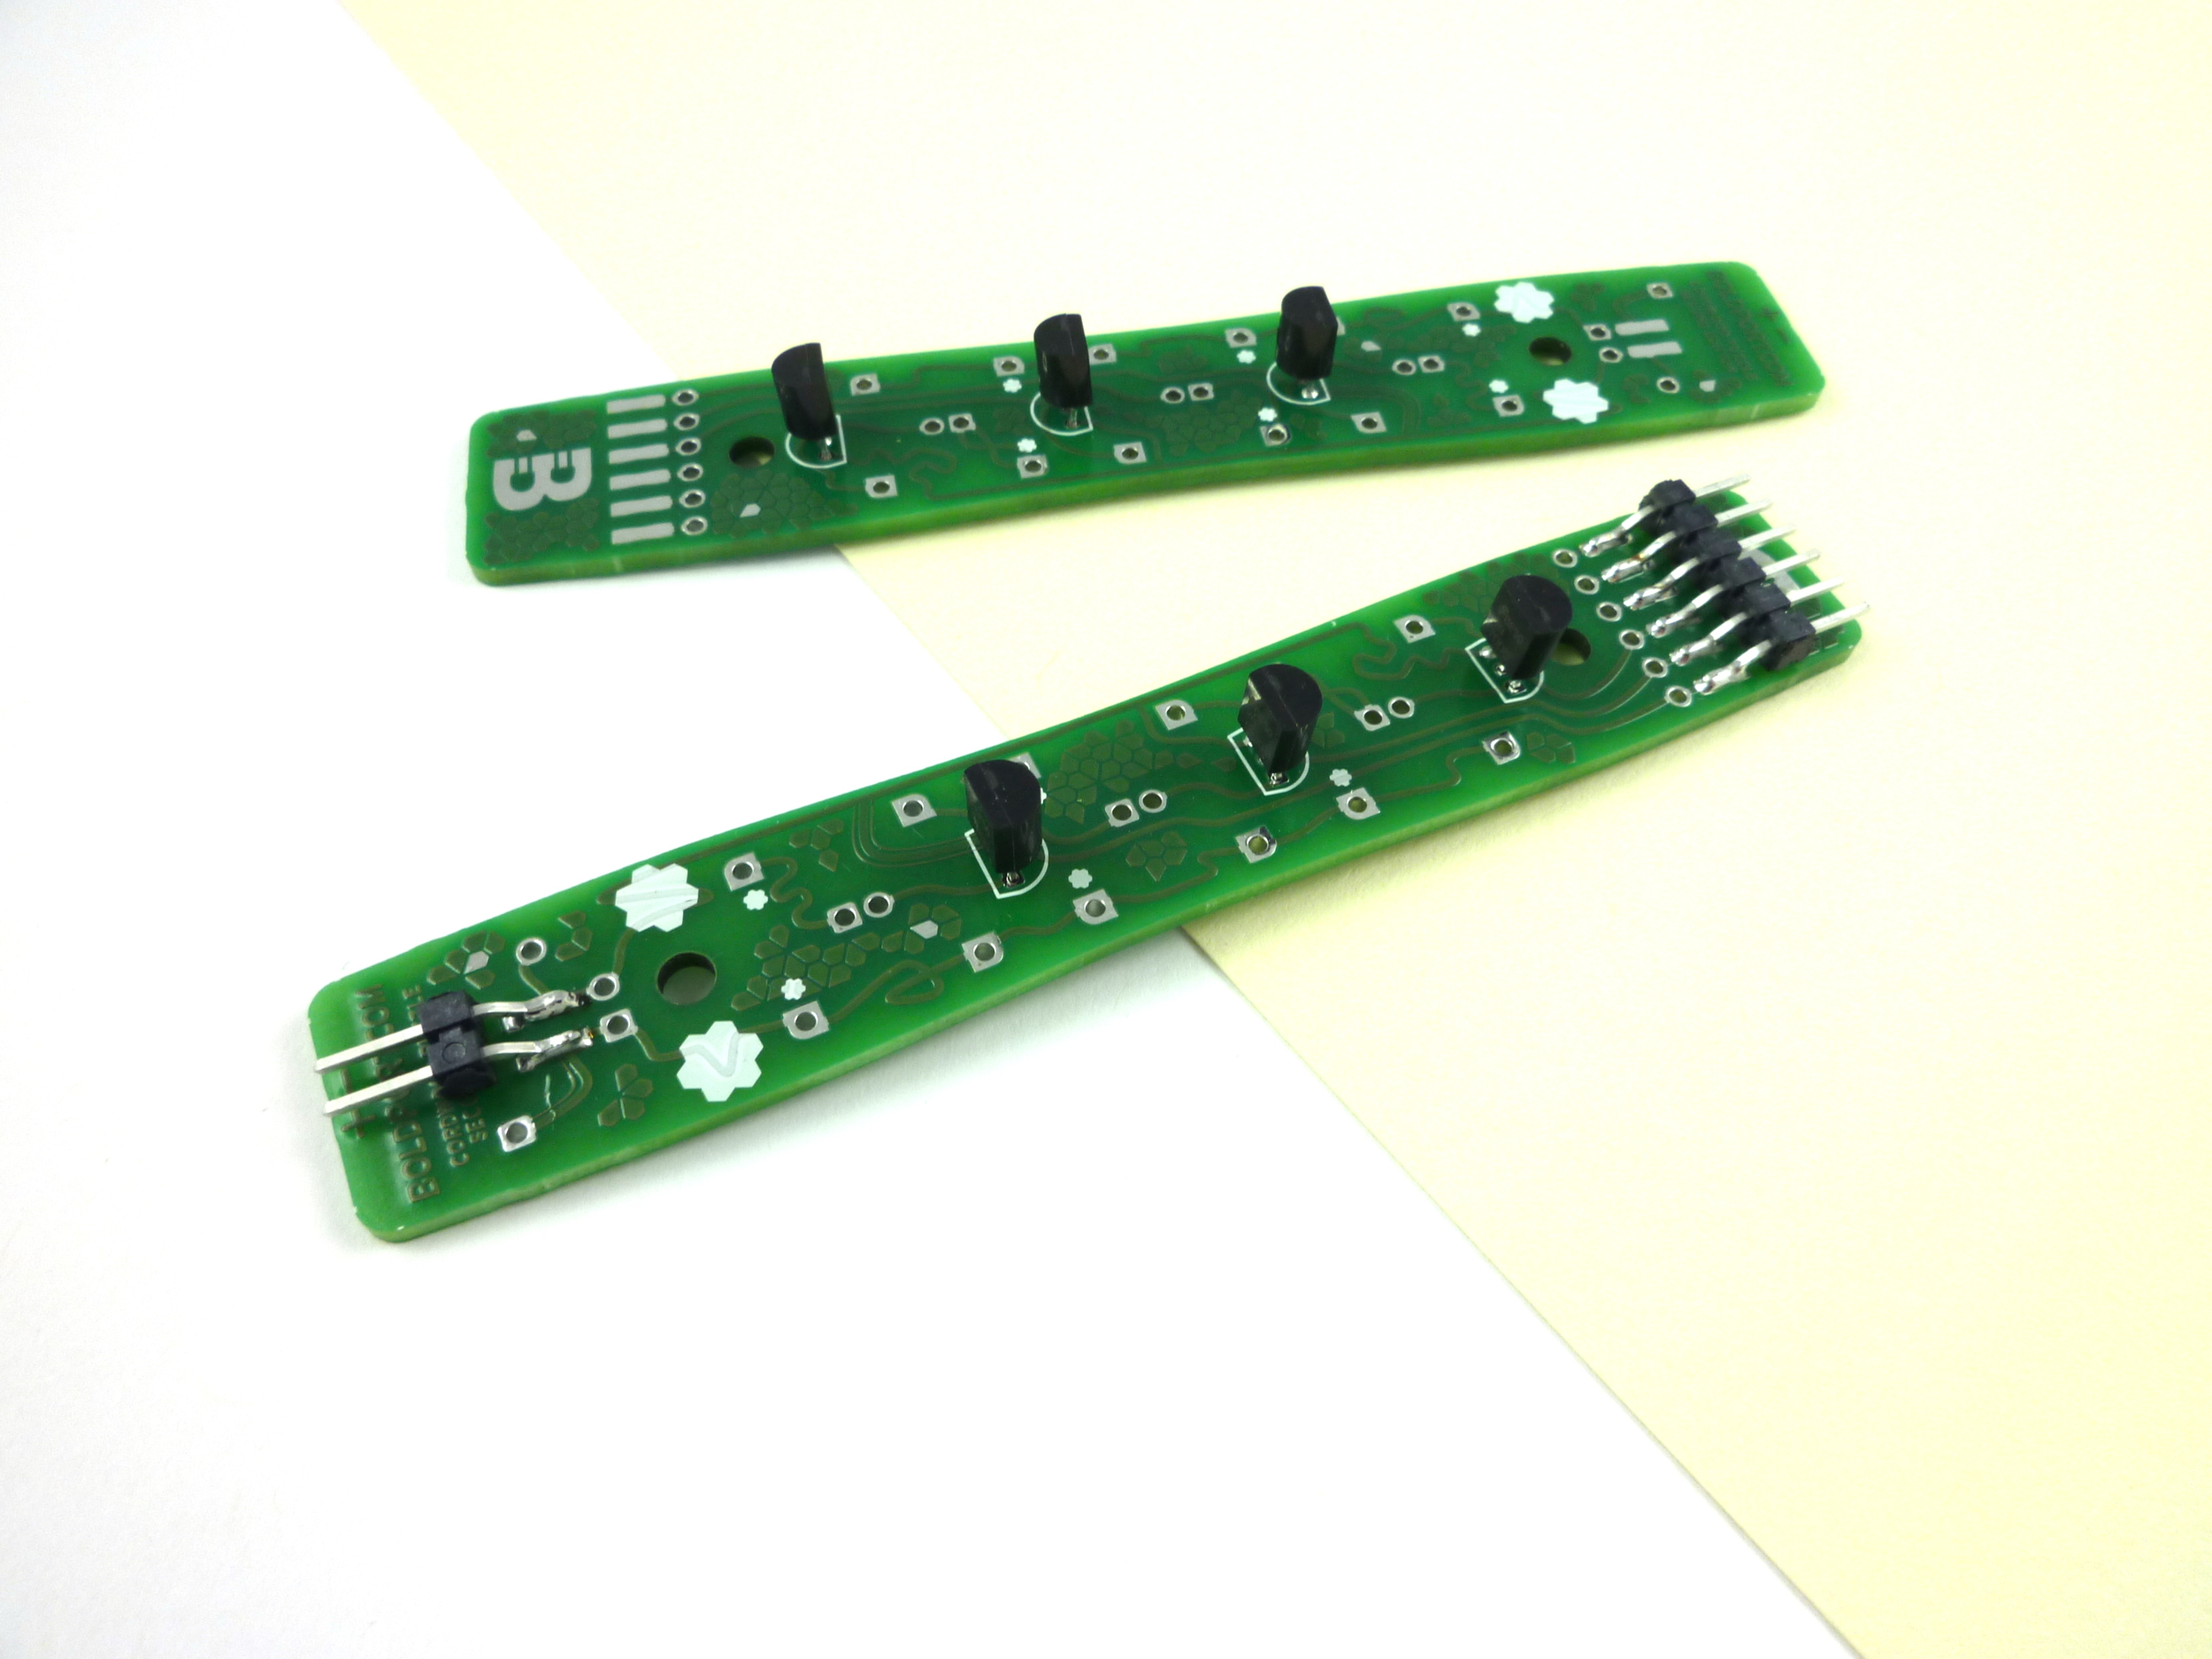 On to one of the boards solder both the 2-pin and 6-pin header, making  sure that the tips are flush with the circuit board's edge.